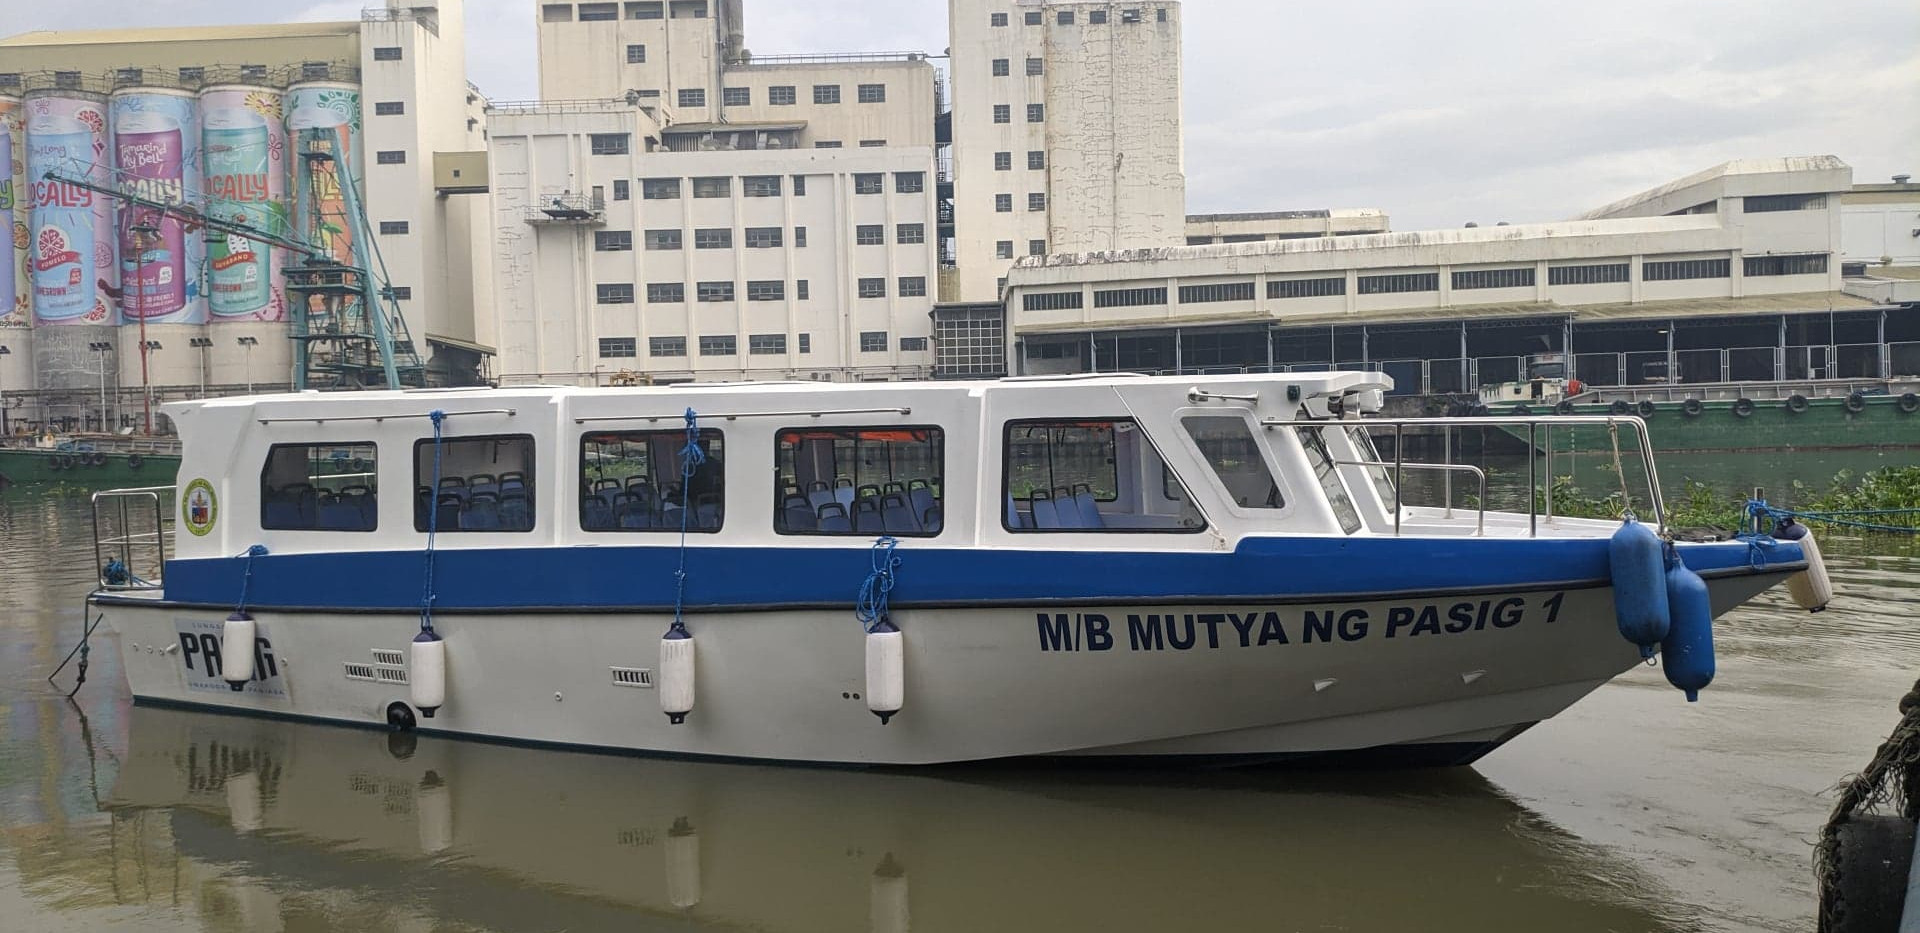 FERRY BOAT 50 pax  Specification:  Overall Length  : 12.98m Breadth             : 3.62m Depth                : 1.8m Draft                  : 0.57m  Inboard Diesel Engine with hydraulic steering